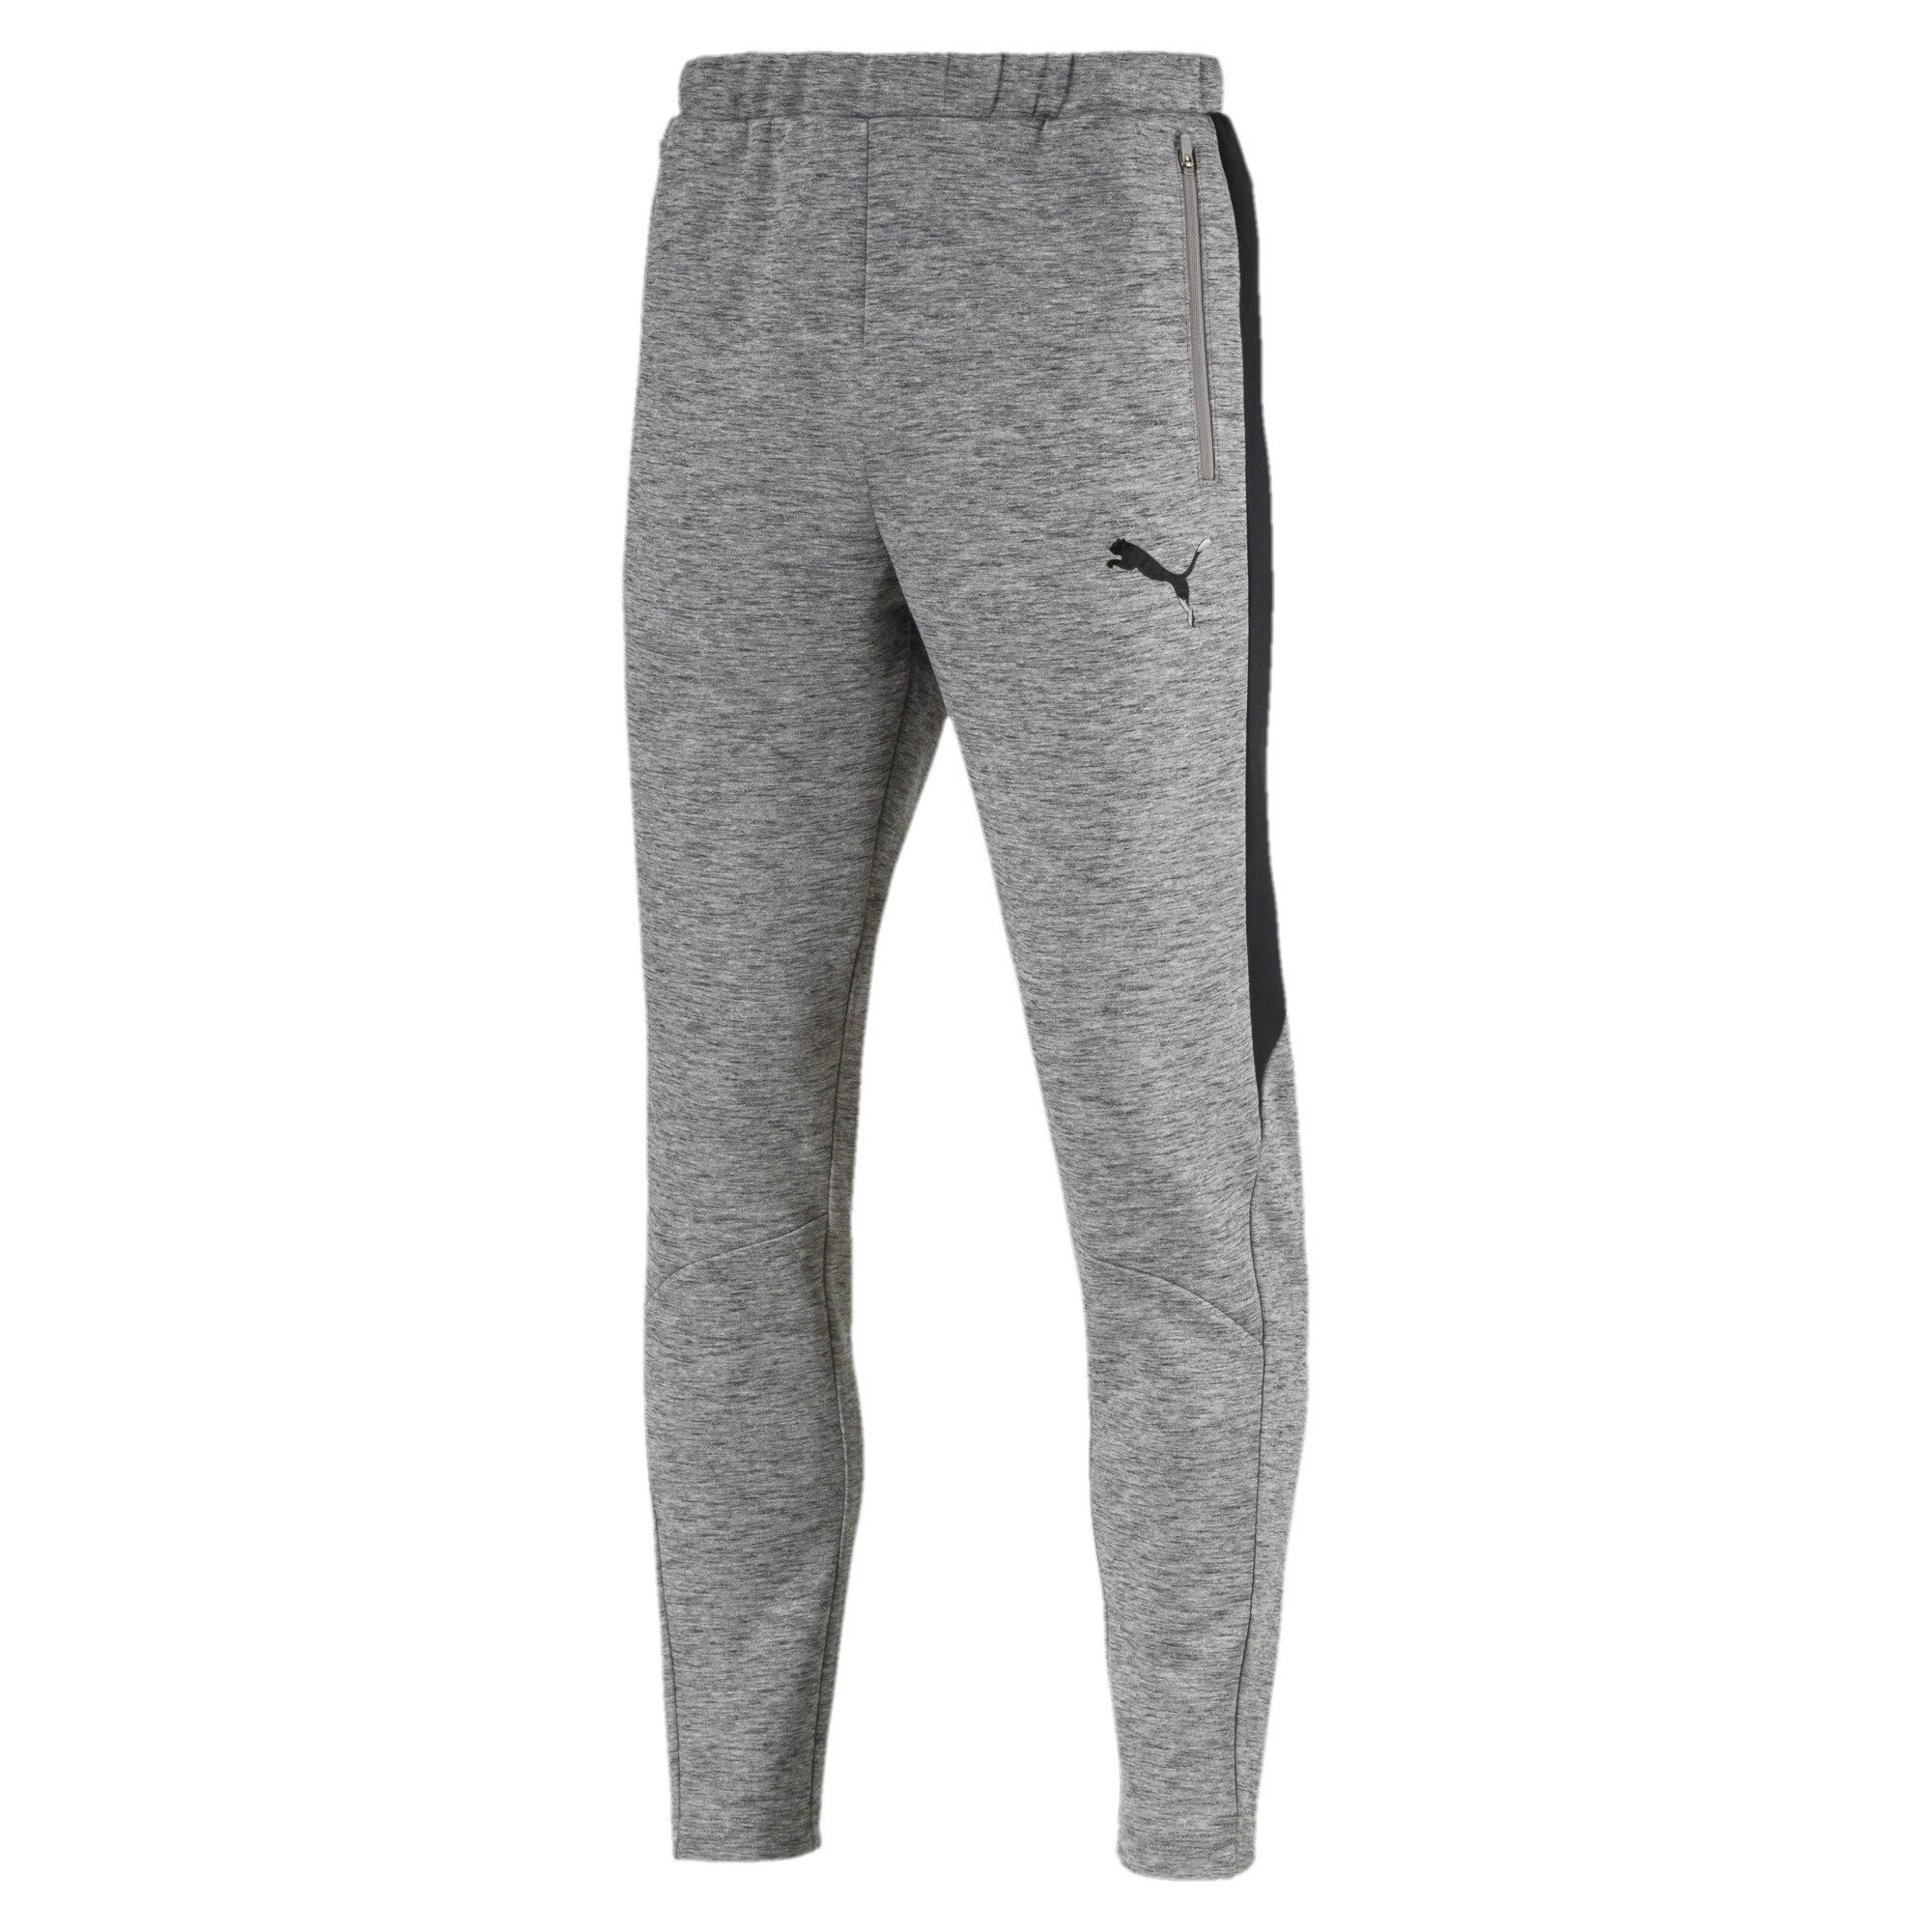 582cff47f265 Official Puma Store  PUMA Evostripe Men s Pants